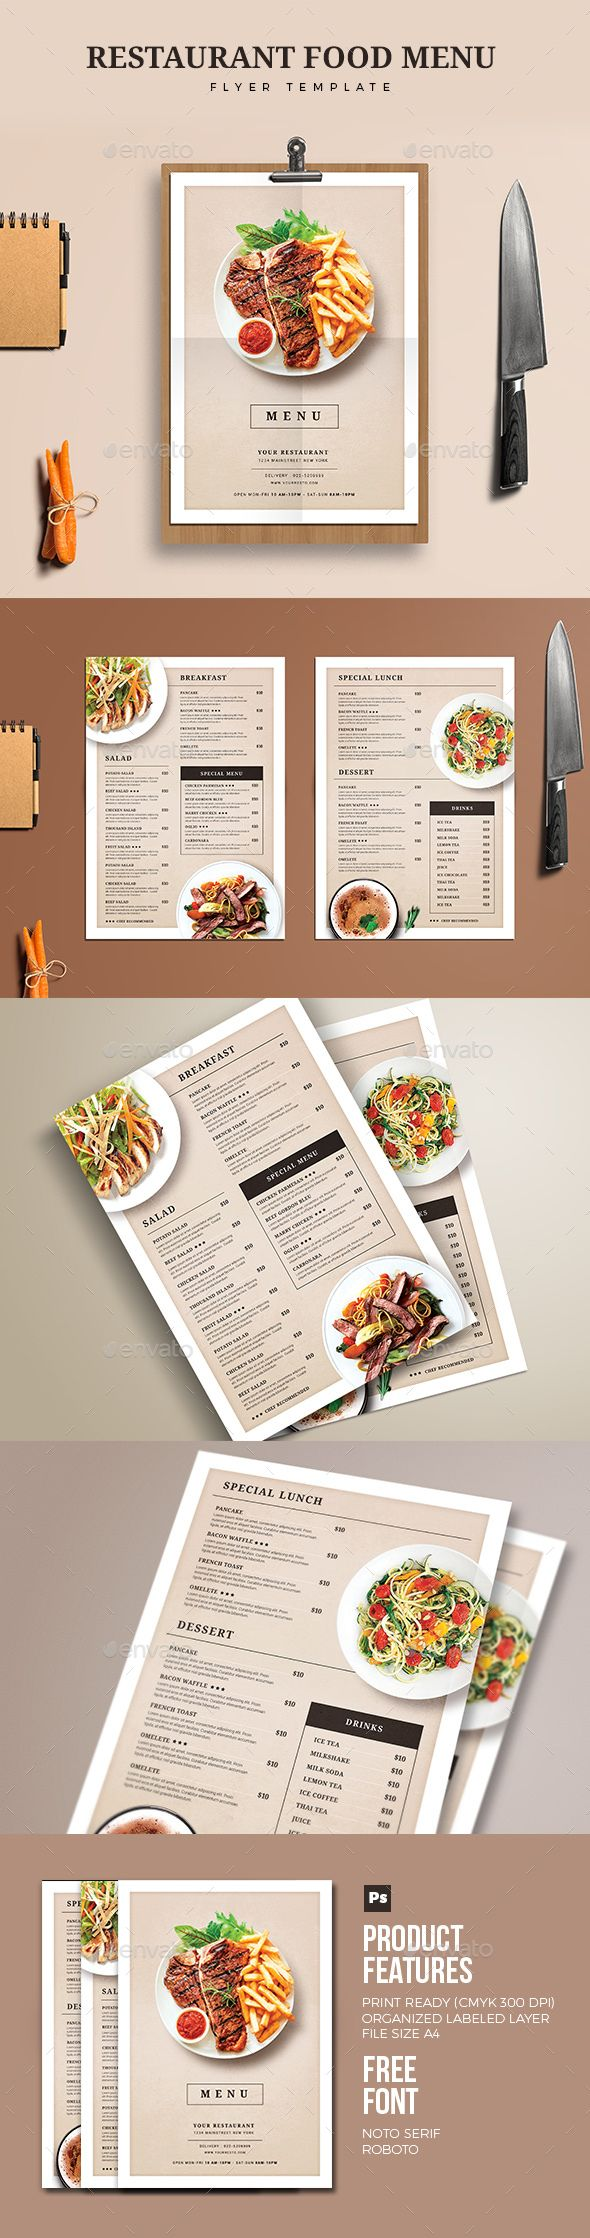 Restaurant Food Menu — Photoshop PSD #simple #elegant • Download ➝ https://graphicriver.net/item/restaurant-food-menu/19199316?ref=pxcr